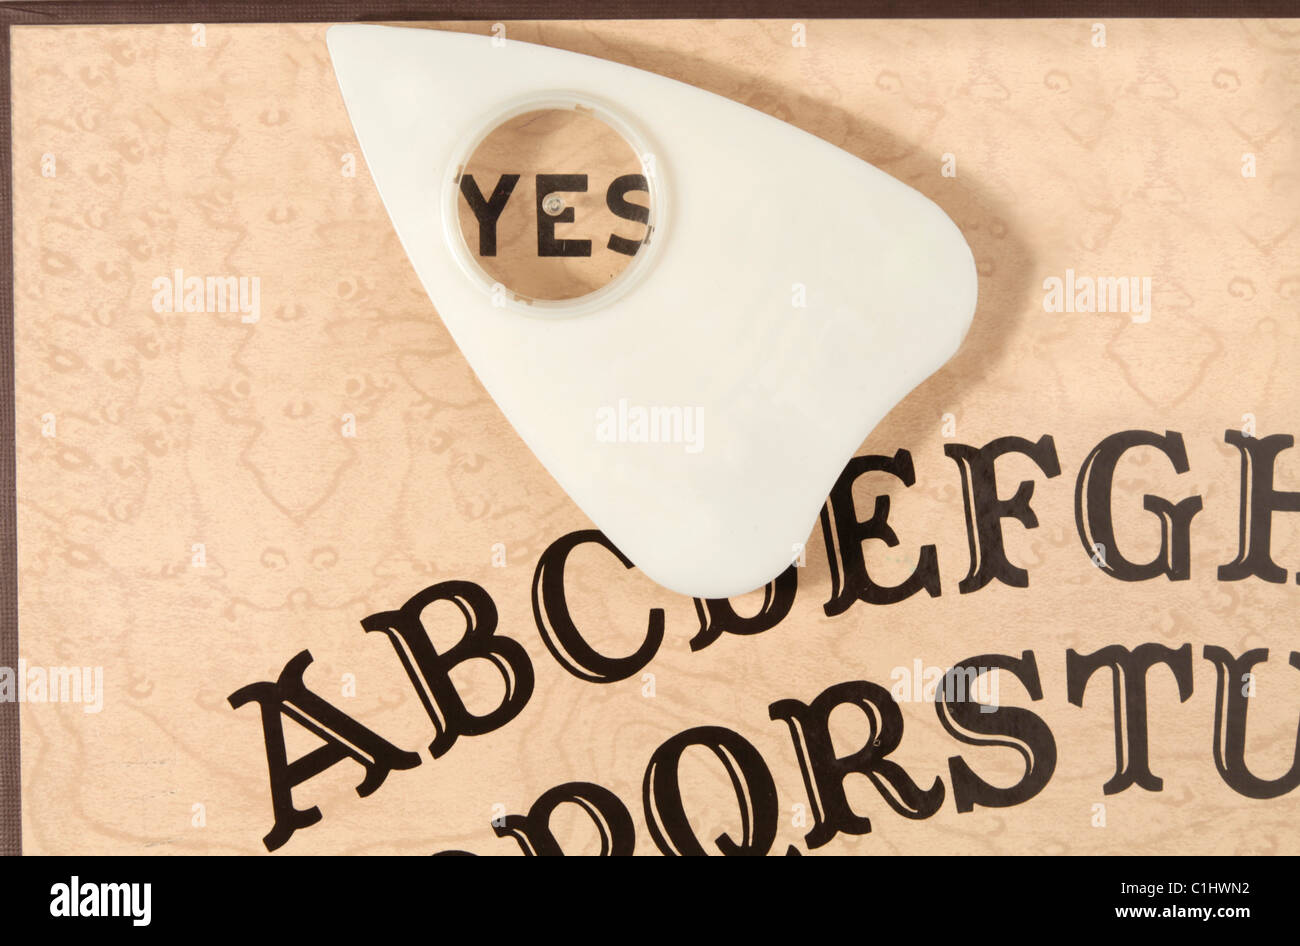 Ouija board with the planchette pointing to YES. This is the vintage Ouija board and classic arrangement of the - Stock Image